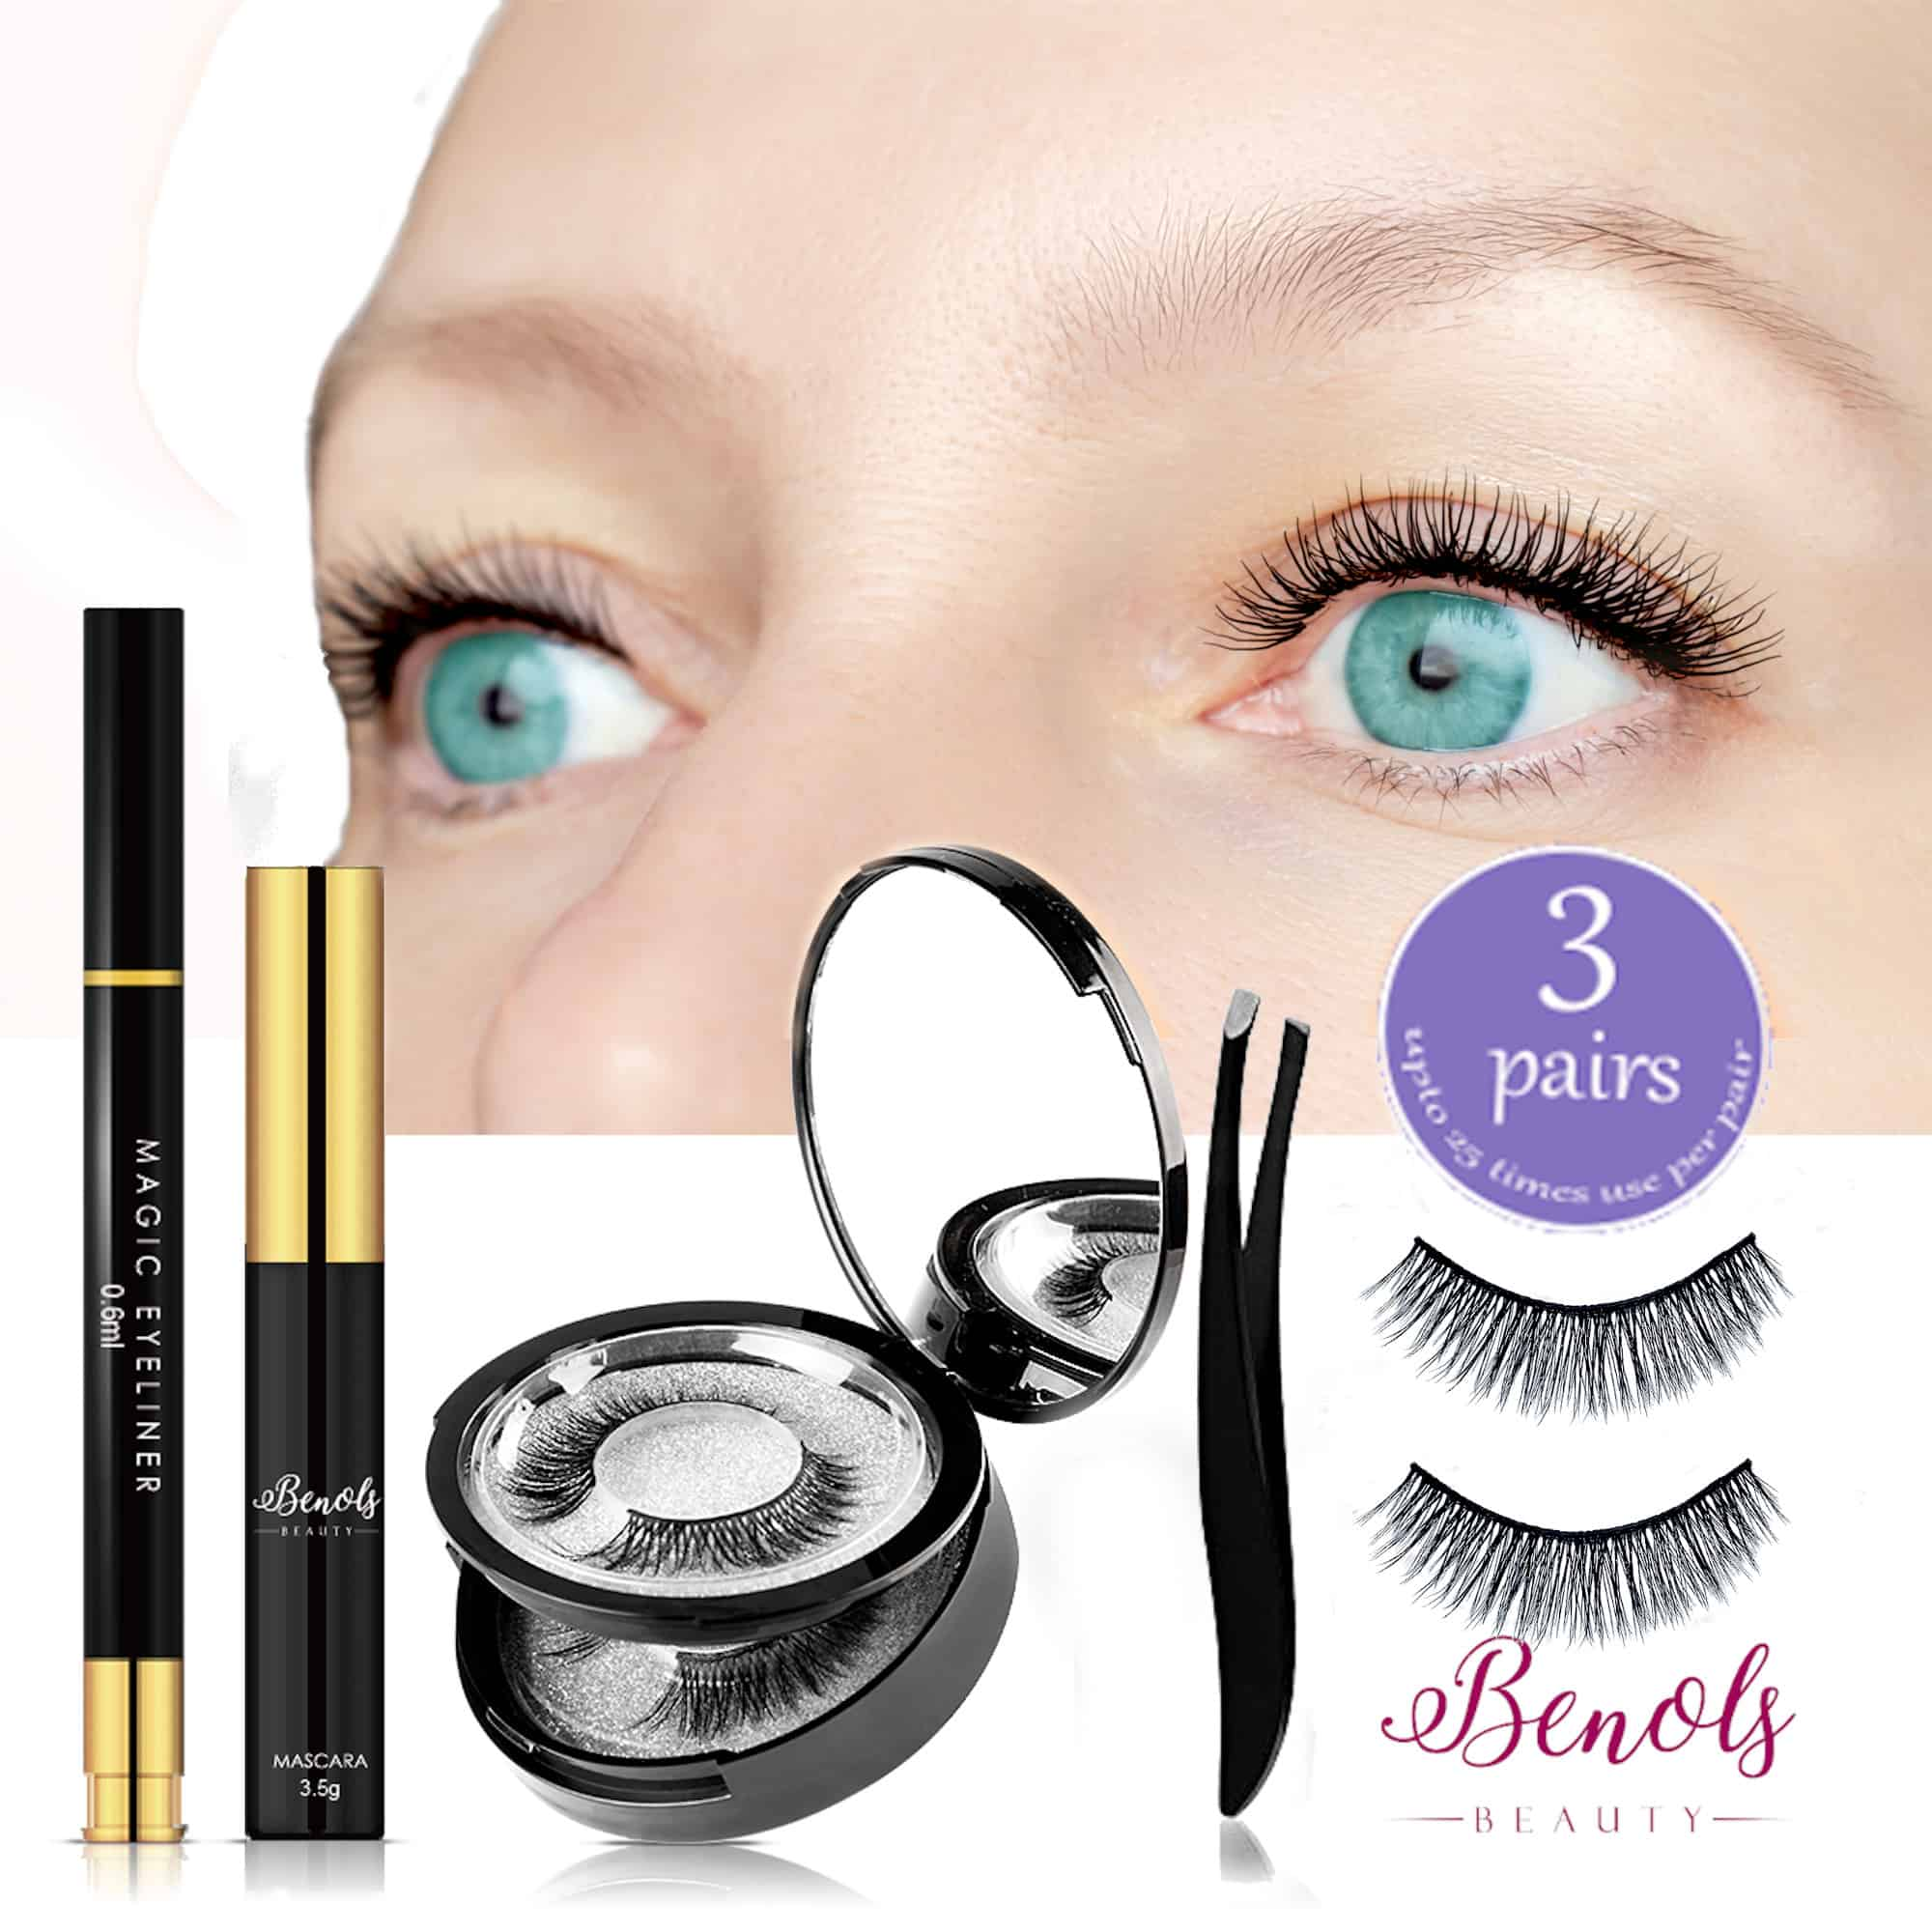 Magic Eyeliner and 3 Pairs False Lash Kit - Ever Ready Collection - Limited Edition - Benols Beauty